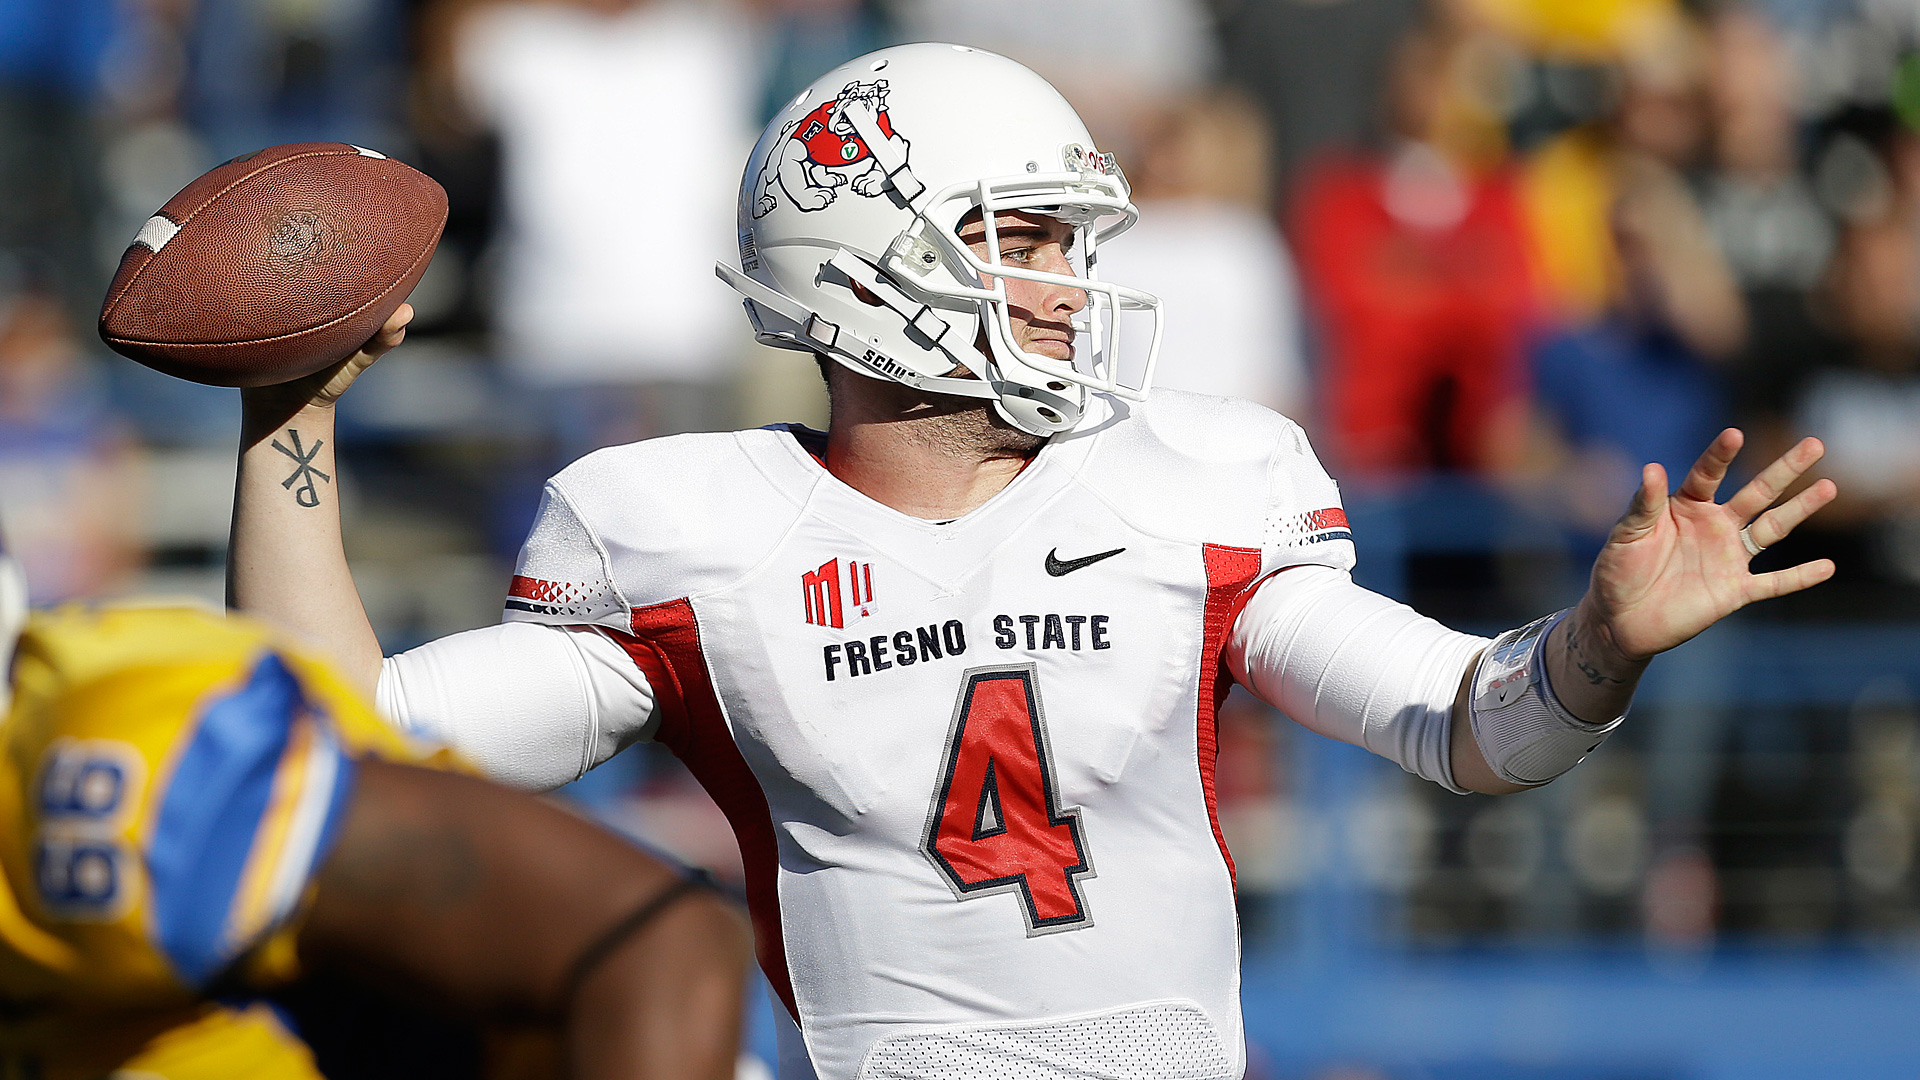 2014 NFL Draft --Raiders select QB Derek Carr in second round